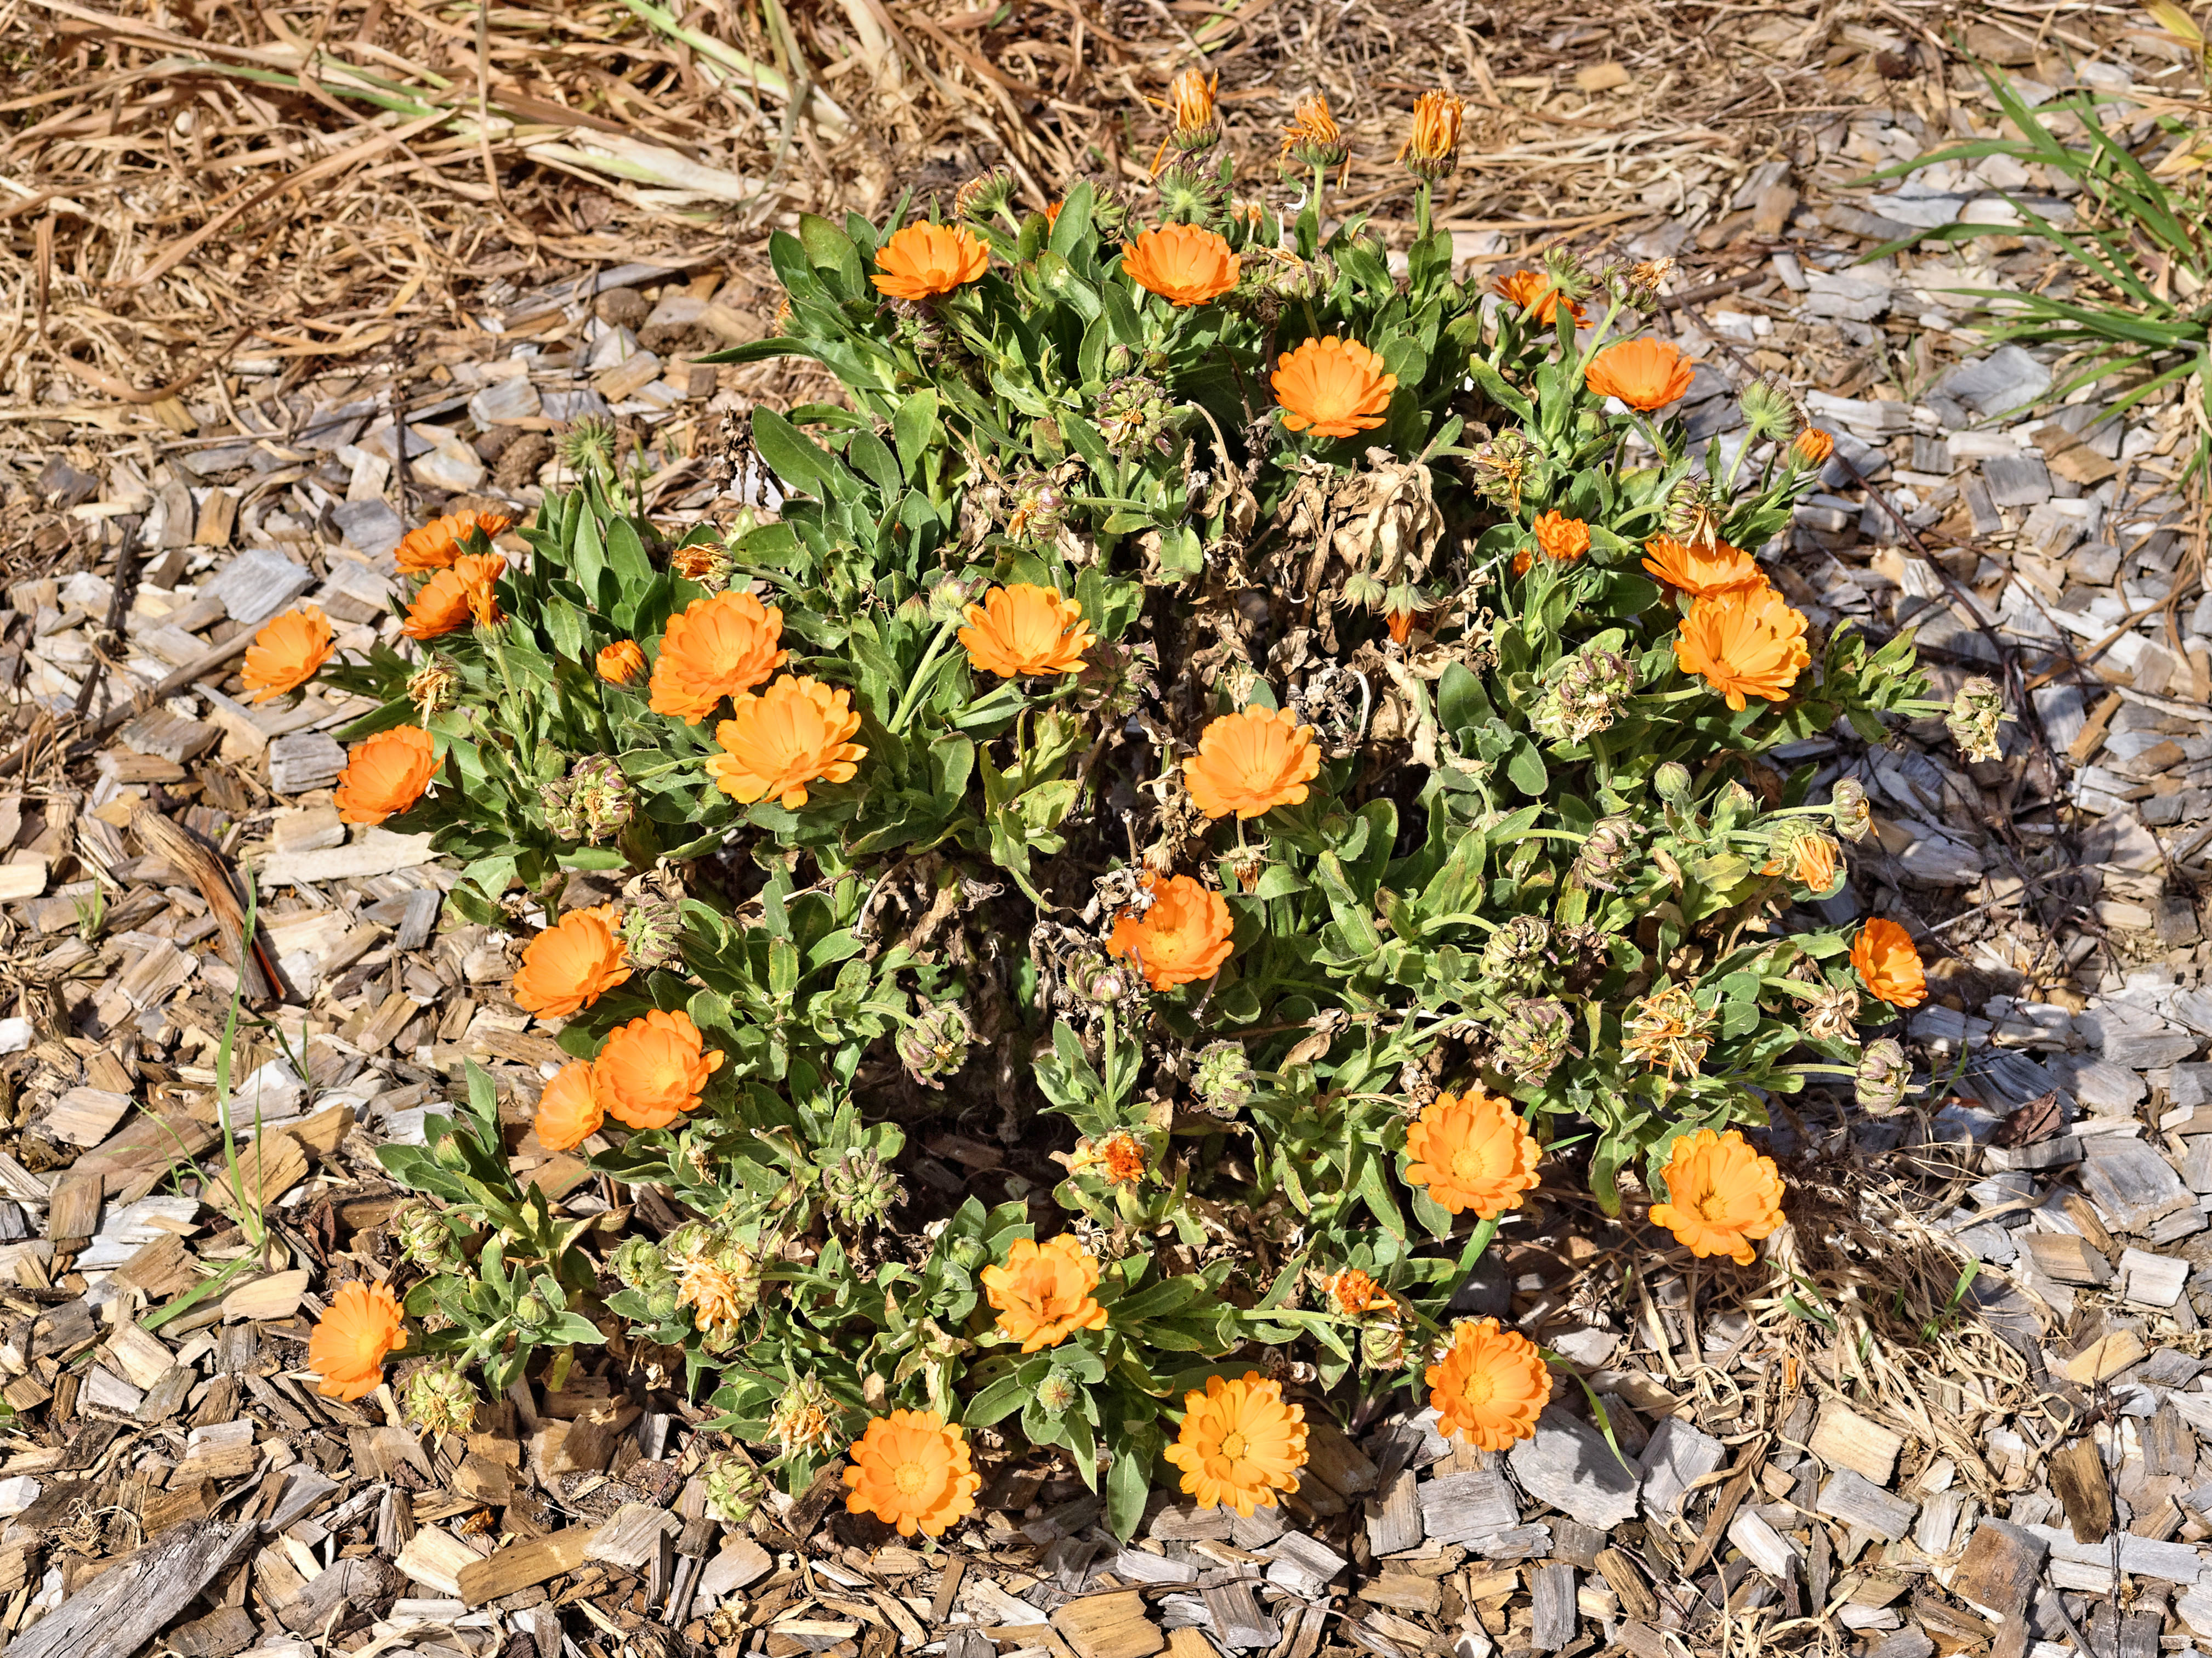 This should be Calendula-1.jpeg.  Is it missing?